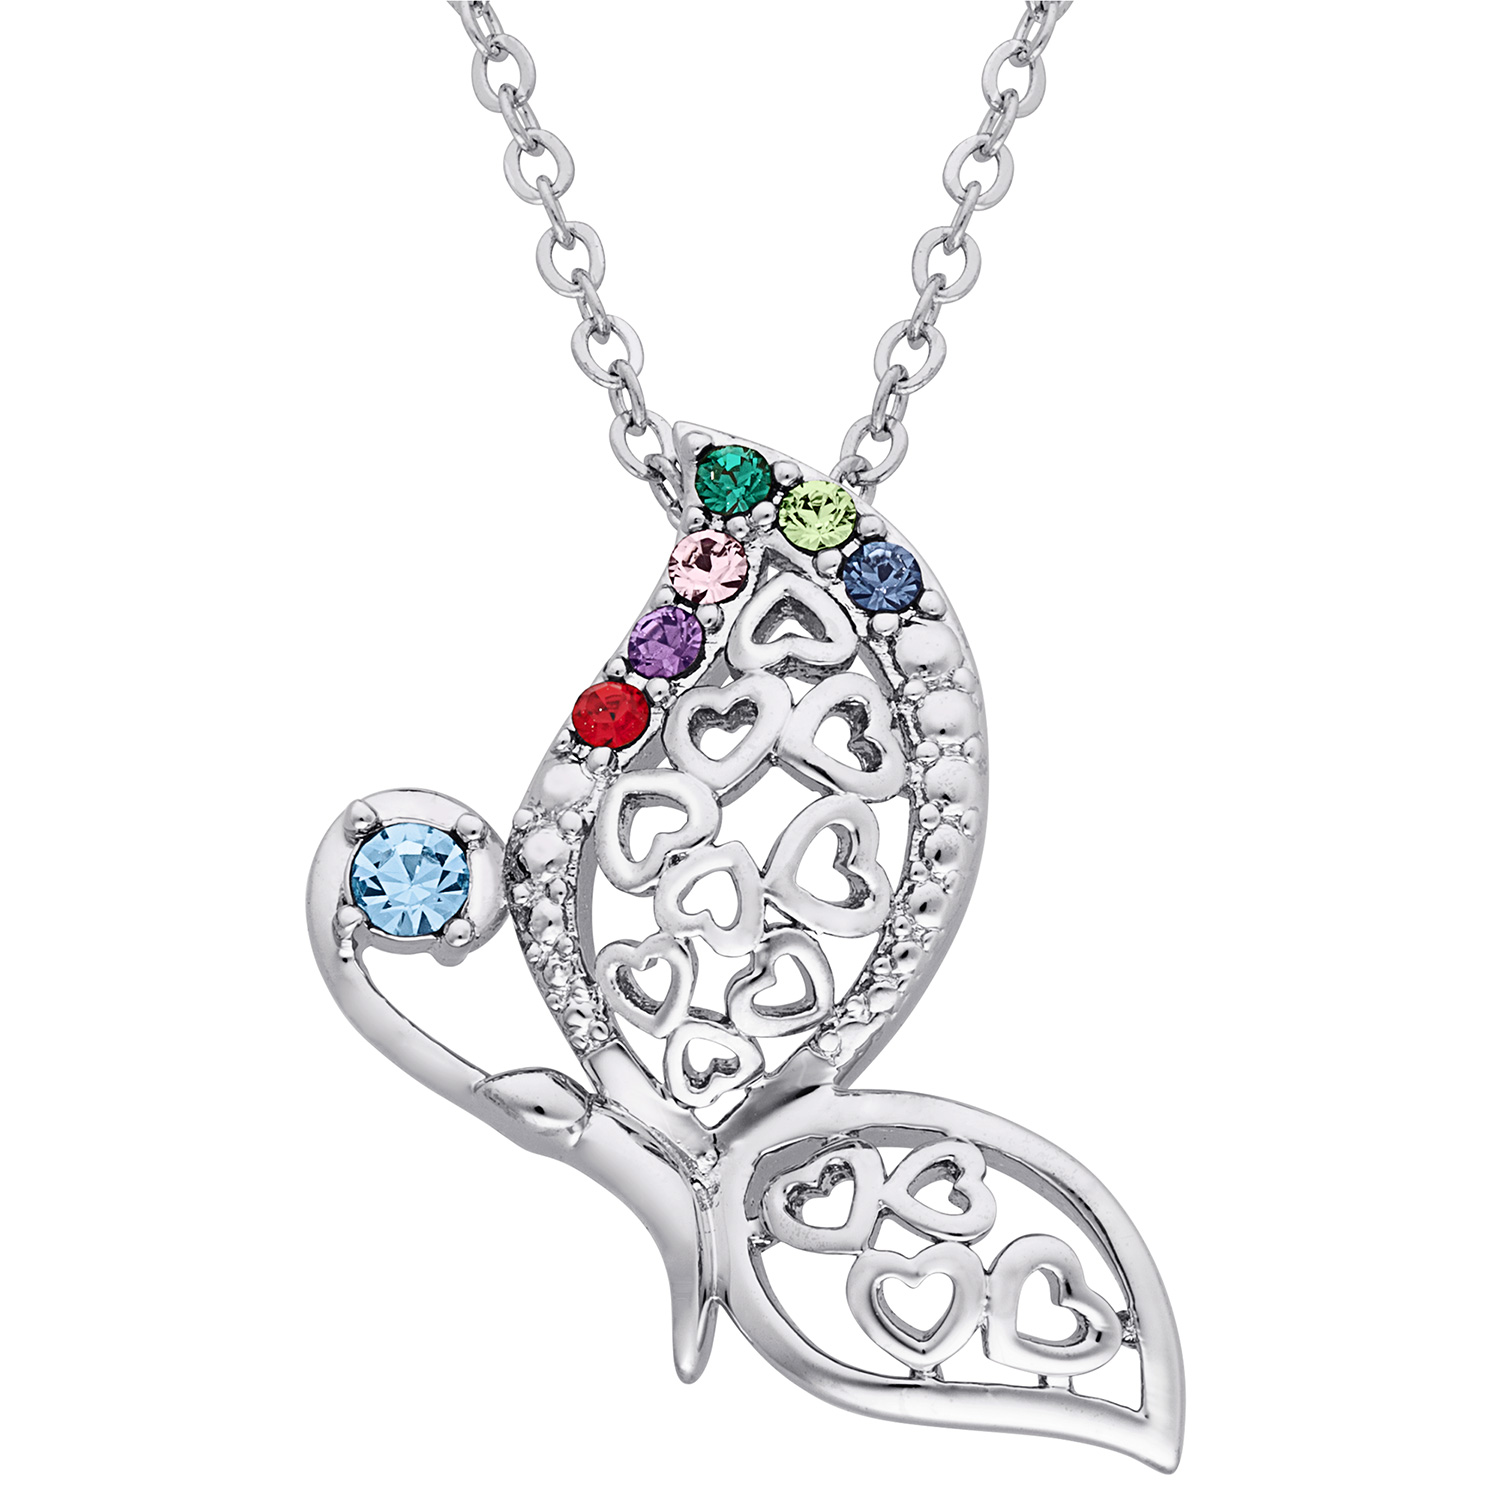 Family Jewelry Personalized Mother's Silvertone or Goldtone Butterfly Birthstone Hearts Pendant